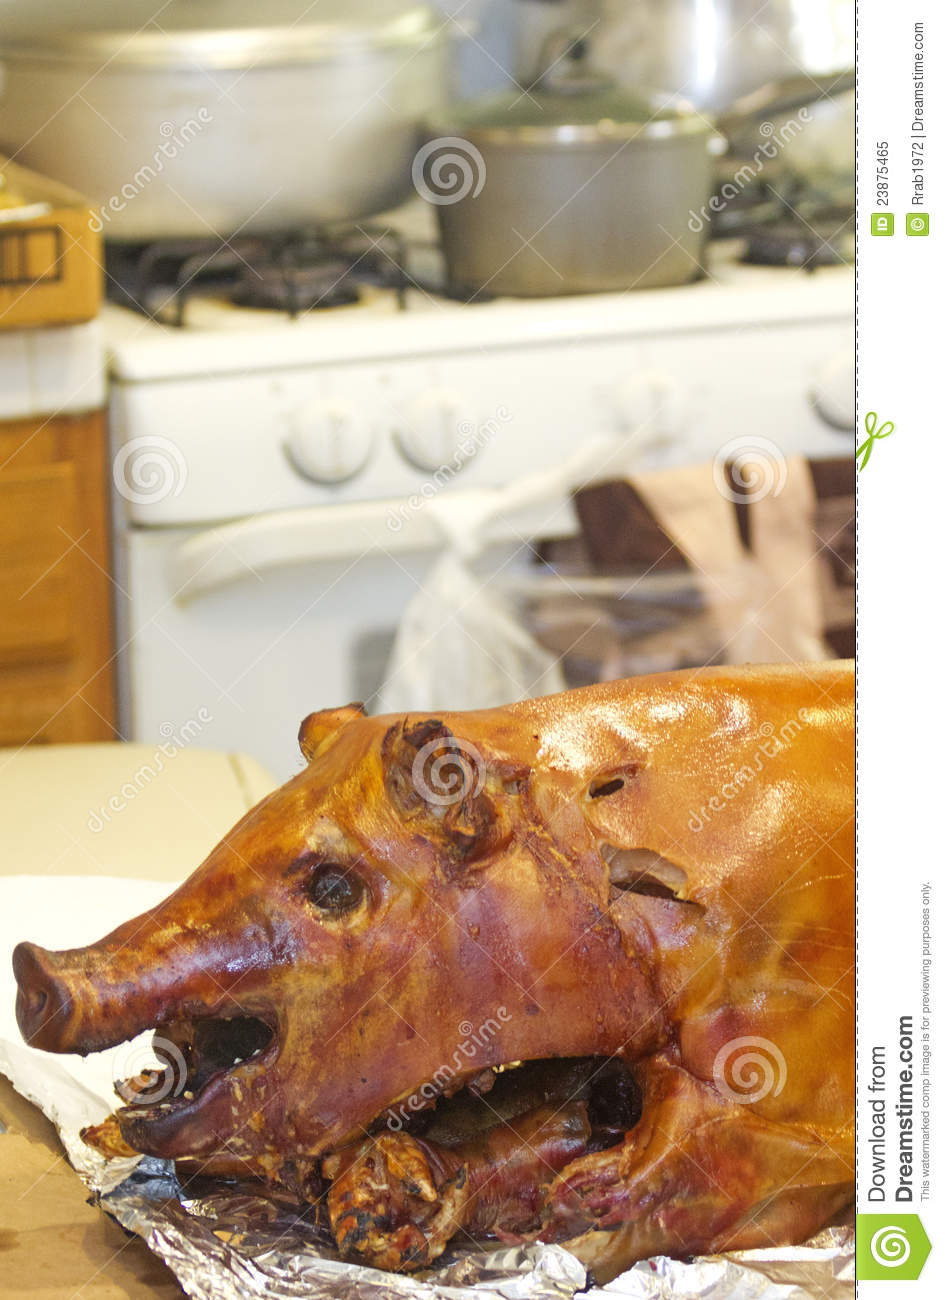 Roast Pig in the Kitchen